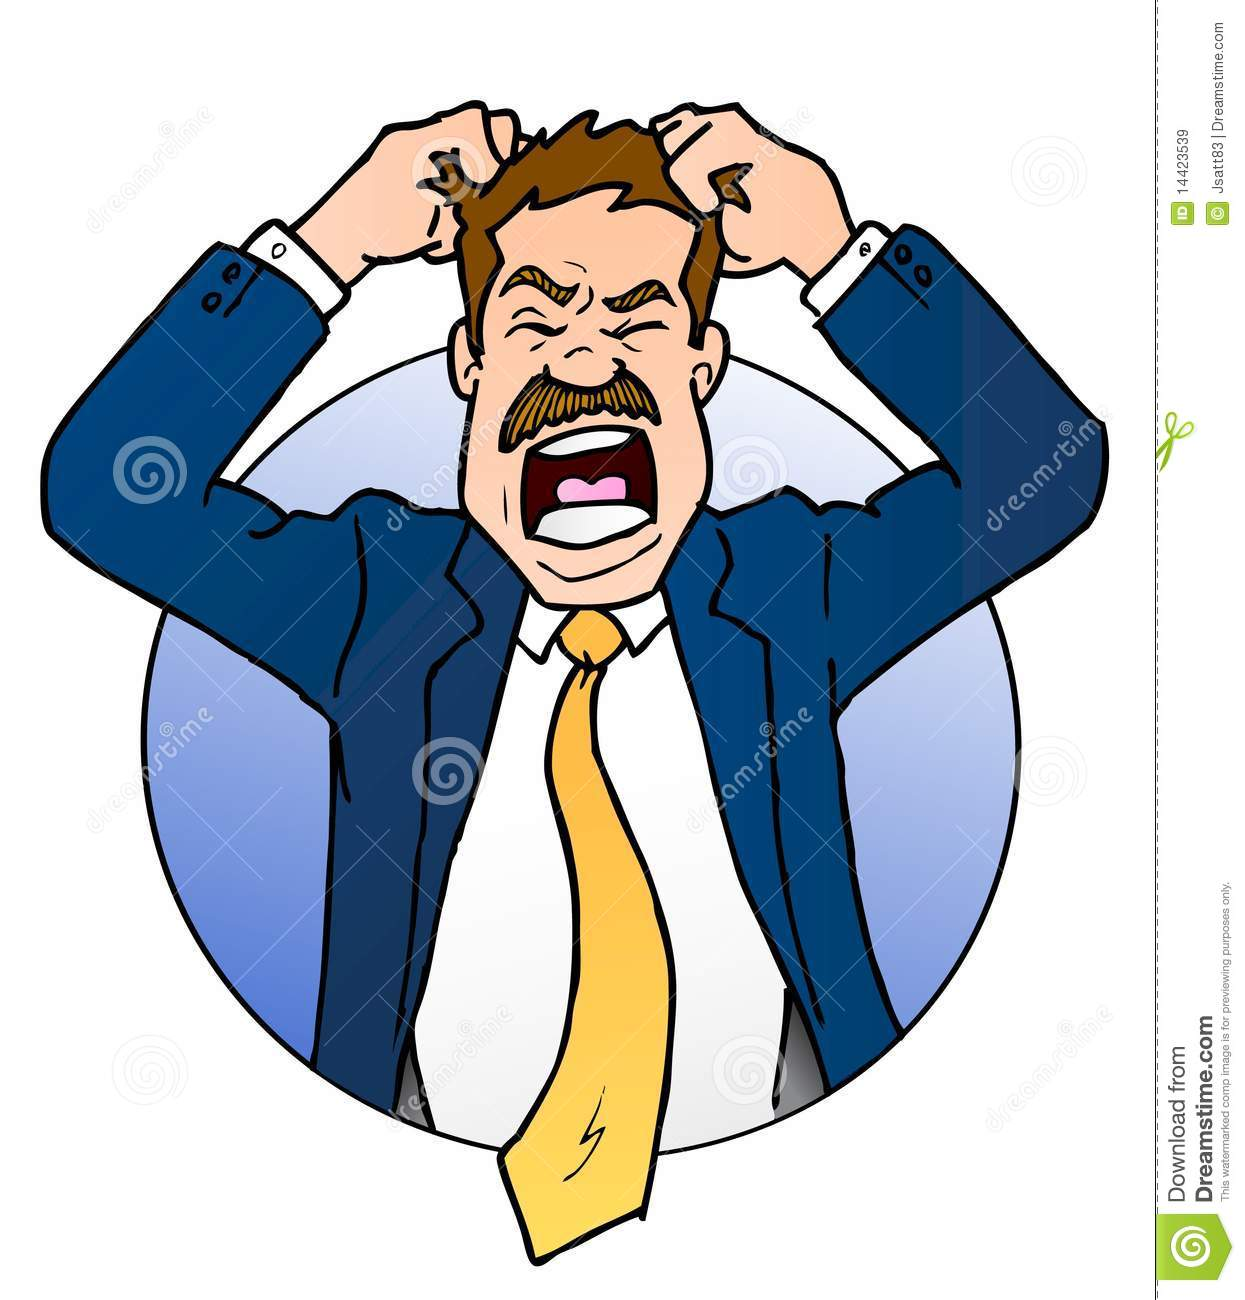 Frustrated Stock Illustrations.